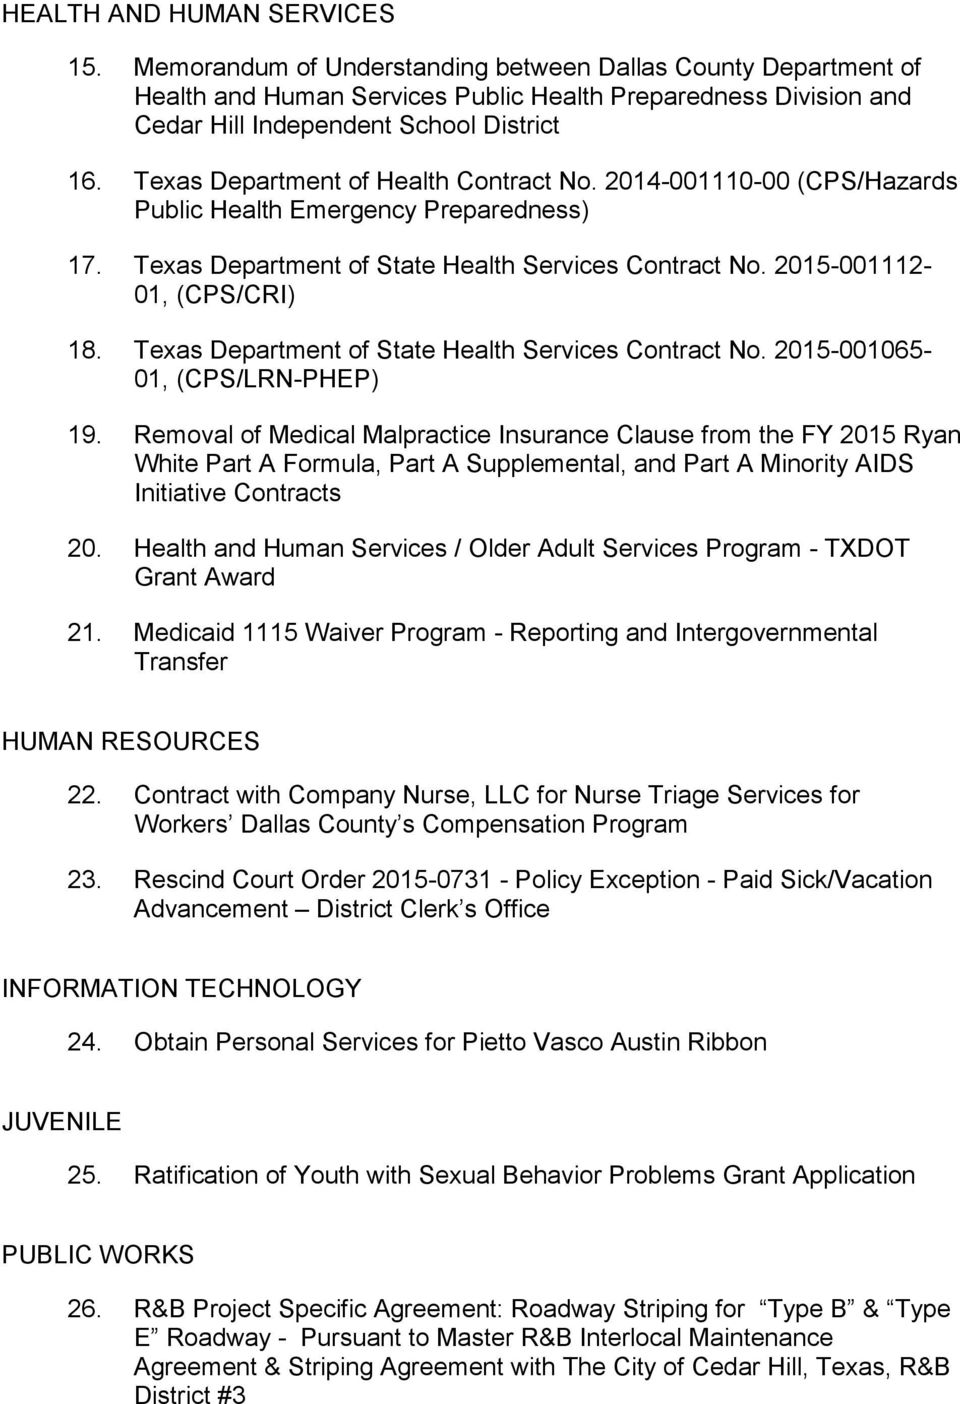 Texas Department of Health Contract No. 2014-001110-00 (CPS/Hazards Public Health Emergency Preparedness) 17. Texas Department of State Health Services Contract No. 2015-001112- 01, (CPS/CRI) 18.